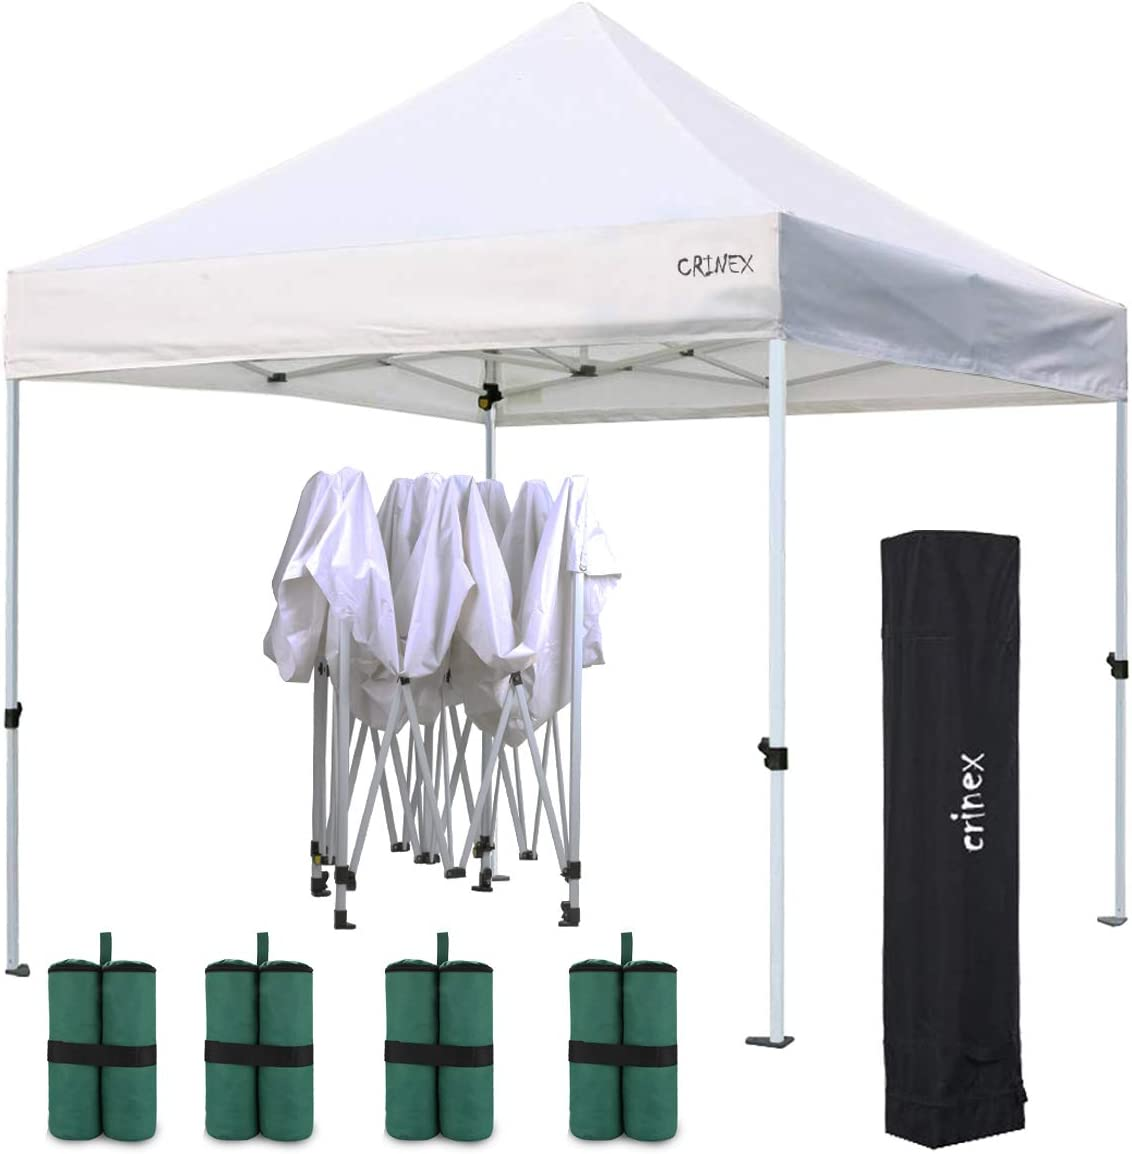 CRINEX 10 x10 Ez Pop Up White Canopy Tent, Sports Fan Canopy with Heavy Duty Black Carry Bag and Bonus 4-Pack Canopy Weight Bags